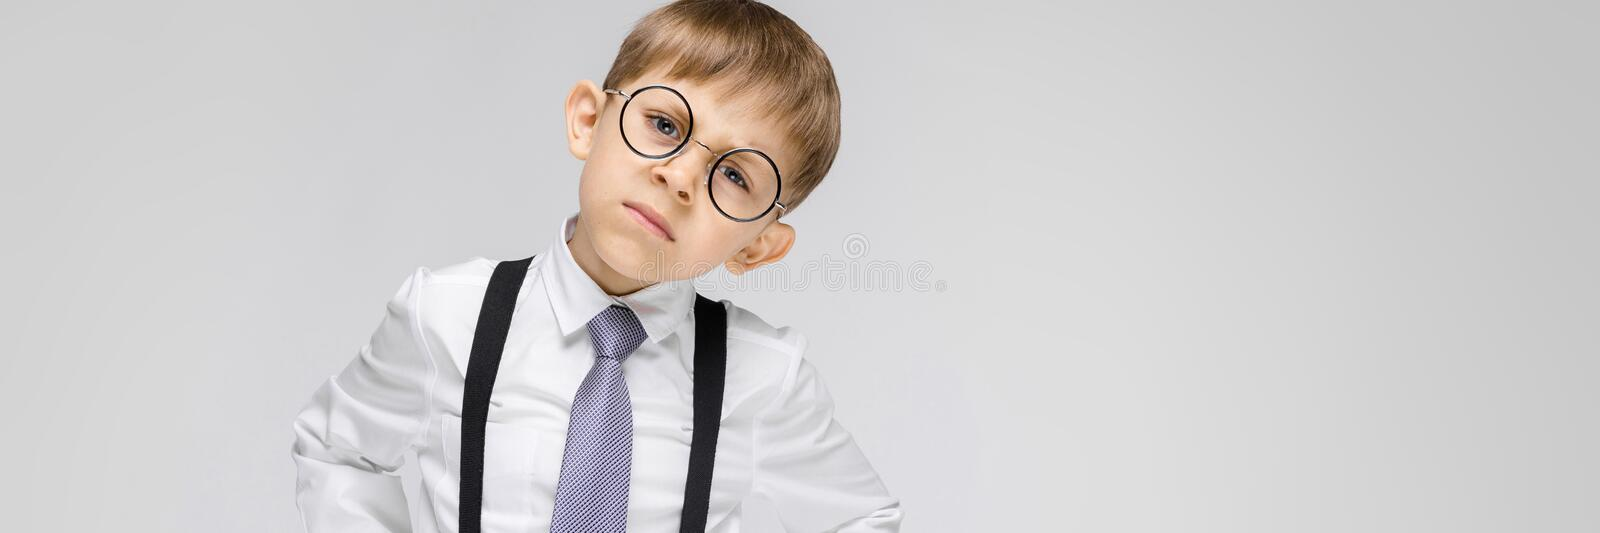 A charming boy in a white shirt, suspenders, a tie and light jeans stands on a gray background. the boy in glasses. Portrait of a boy on a gray background royalty free stock images